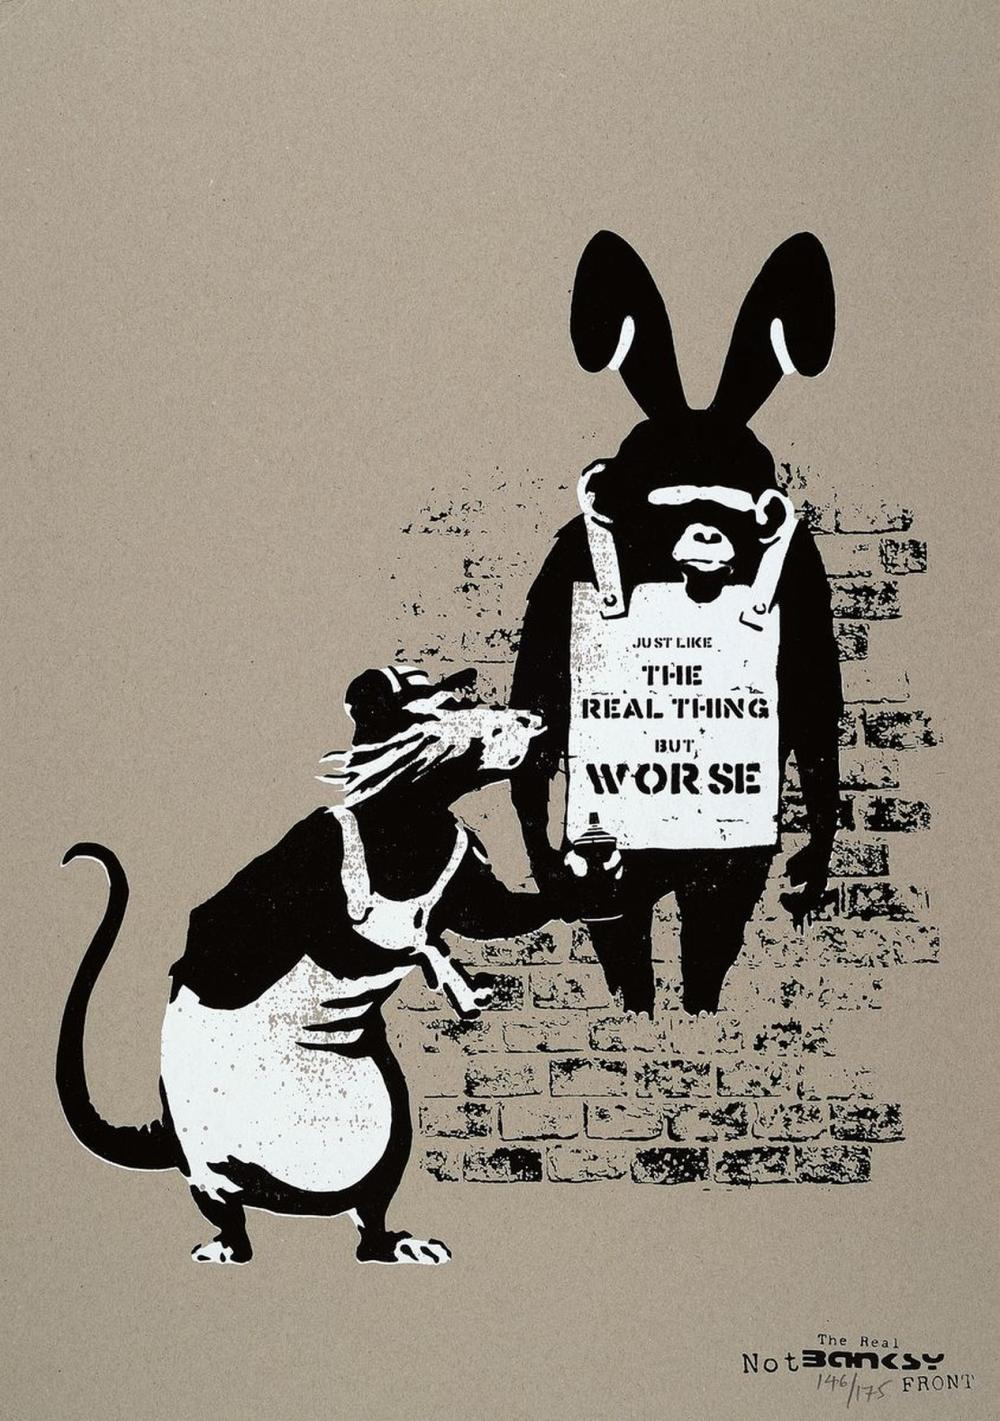 The Real Not Banksy Front, # 'Like The Real thing but